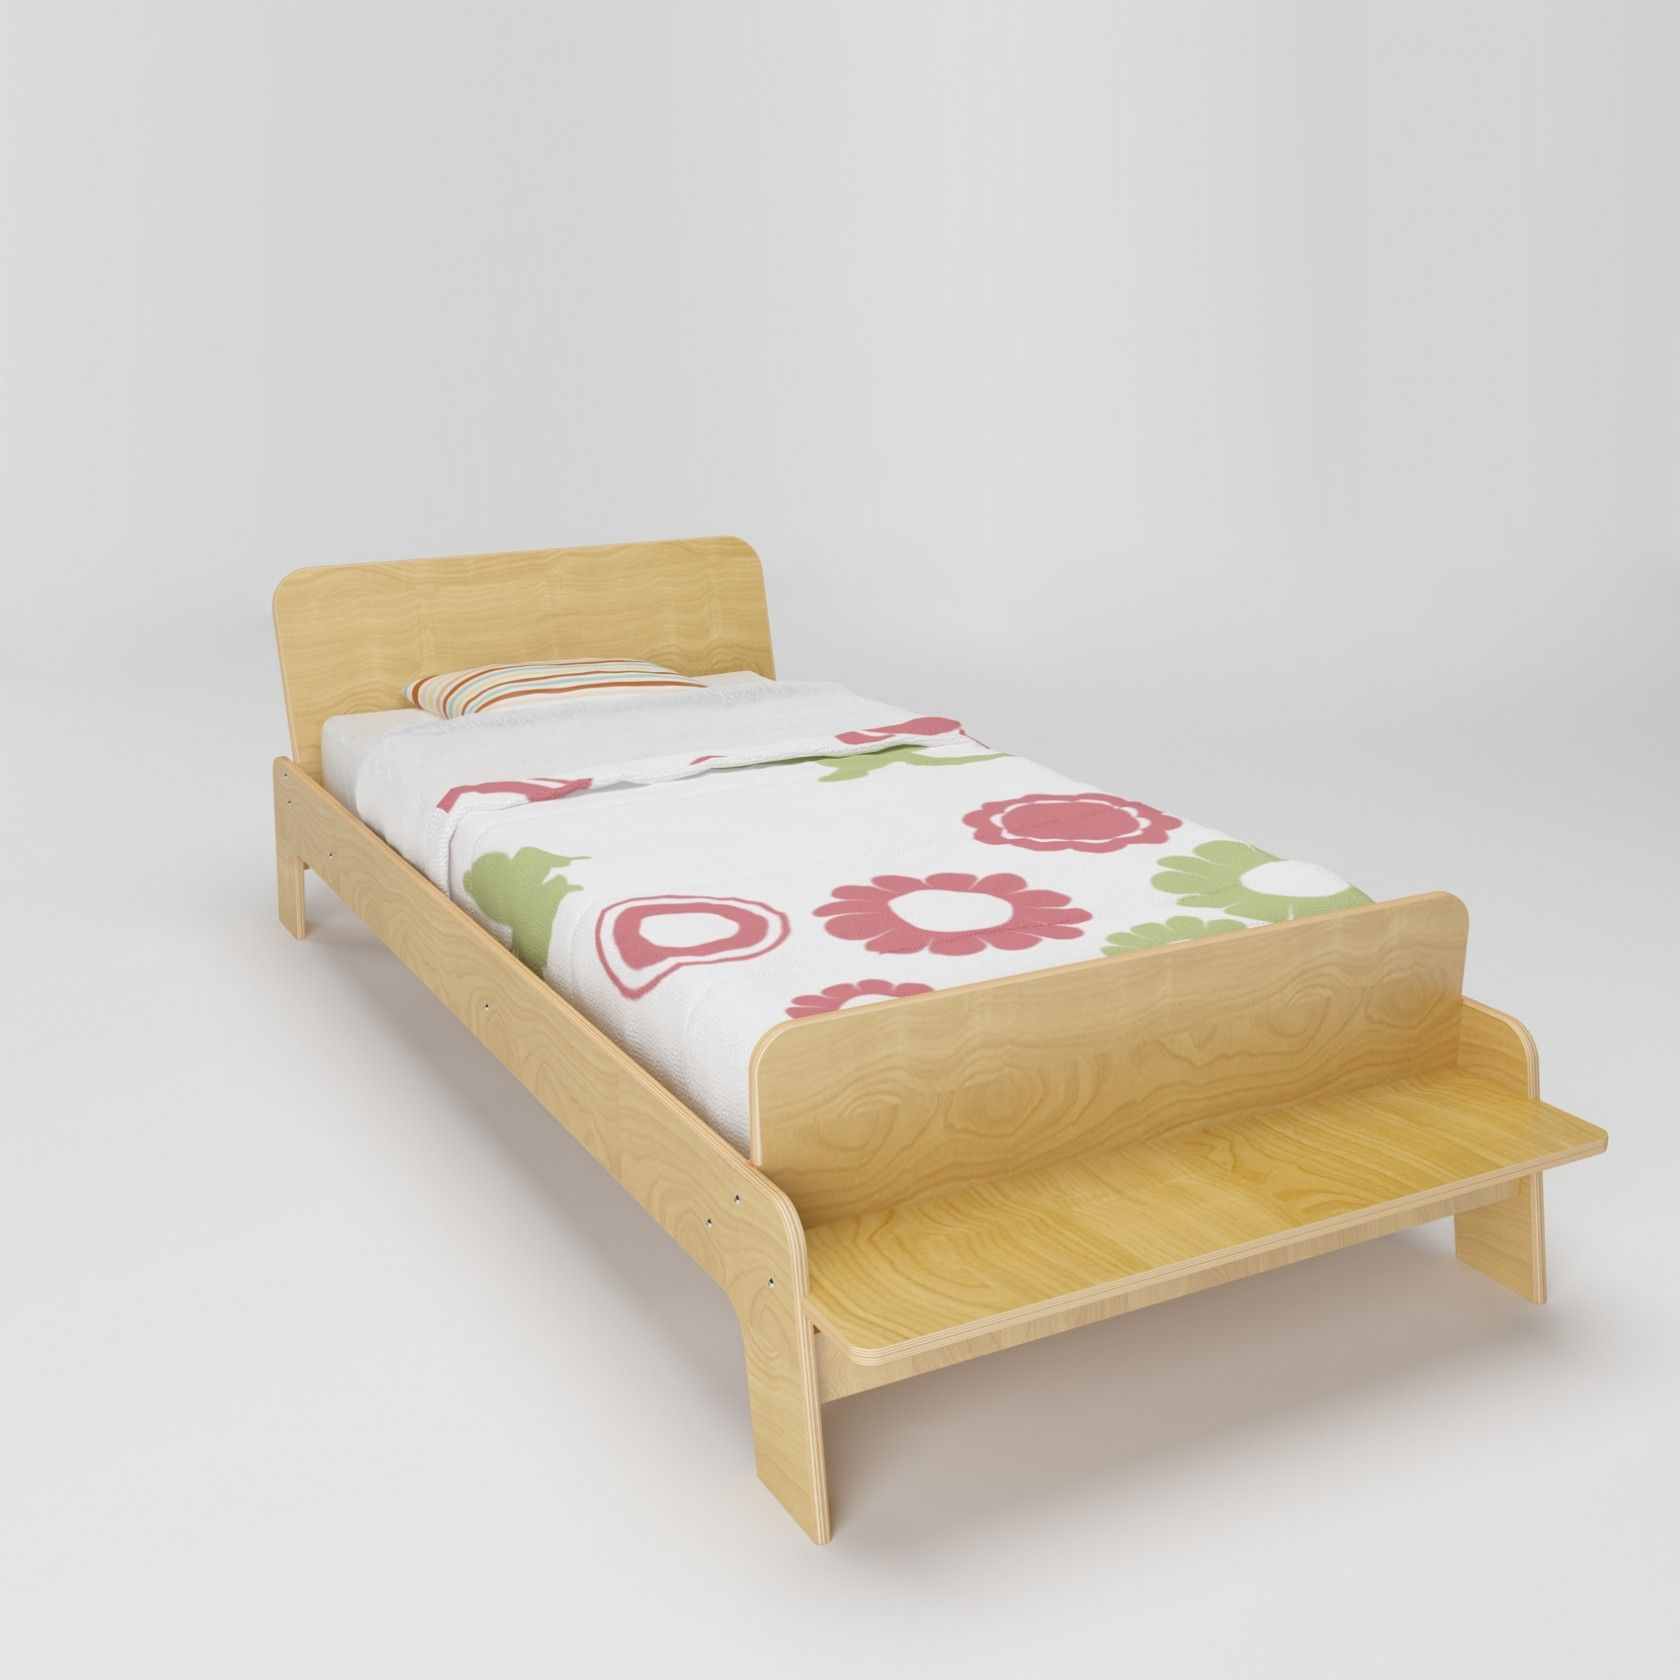 Low Profile Arlo Twin With Bench At The End And Wooden Texture Natural Wood 4550 Pauldryden Co Kid Beds Bed